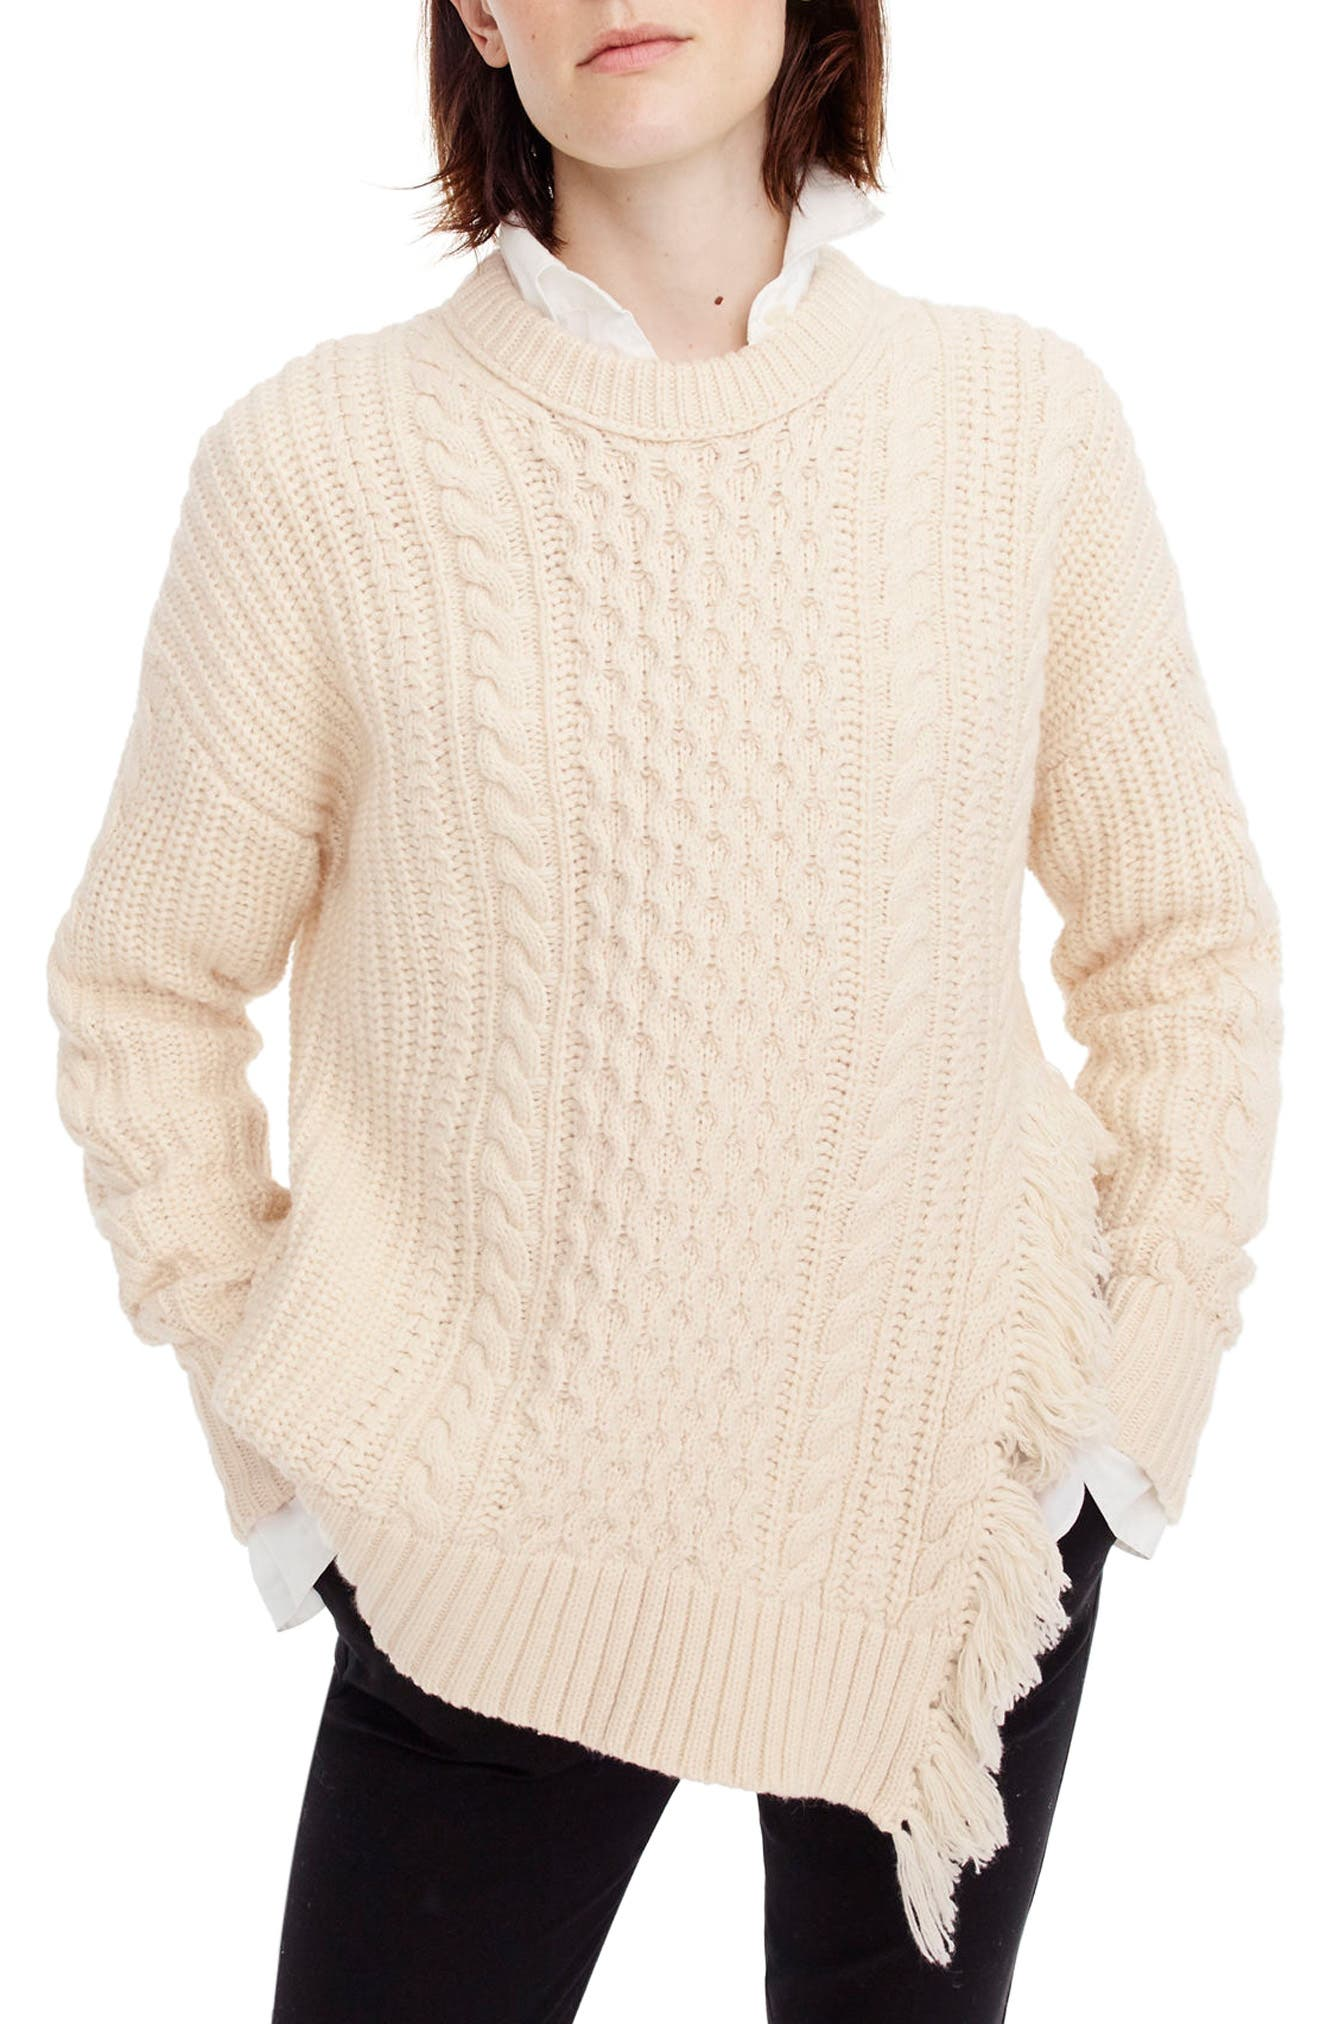 J.Crew Fringe Detail Cable Knit Sweater,                             Main thumbnail 1, color,                             Ivory